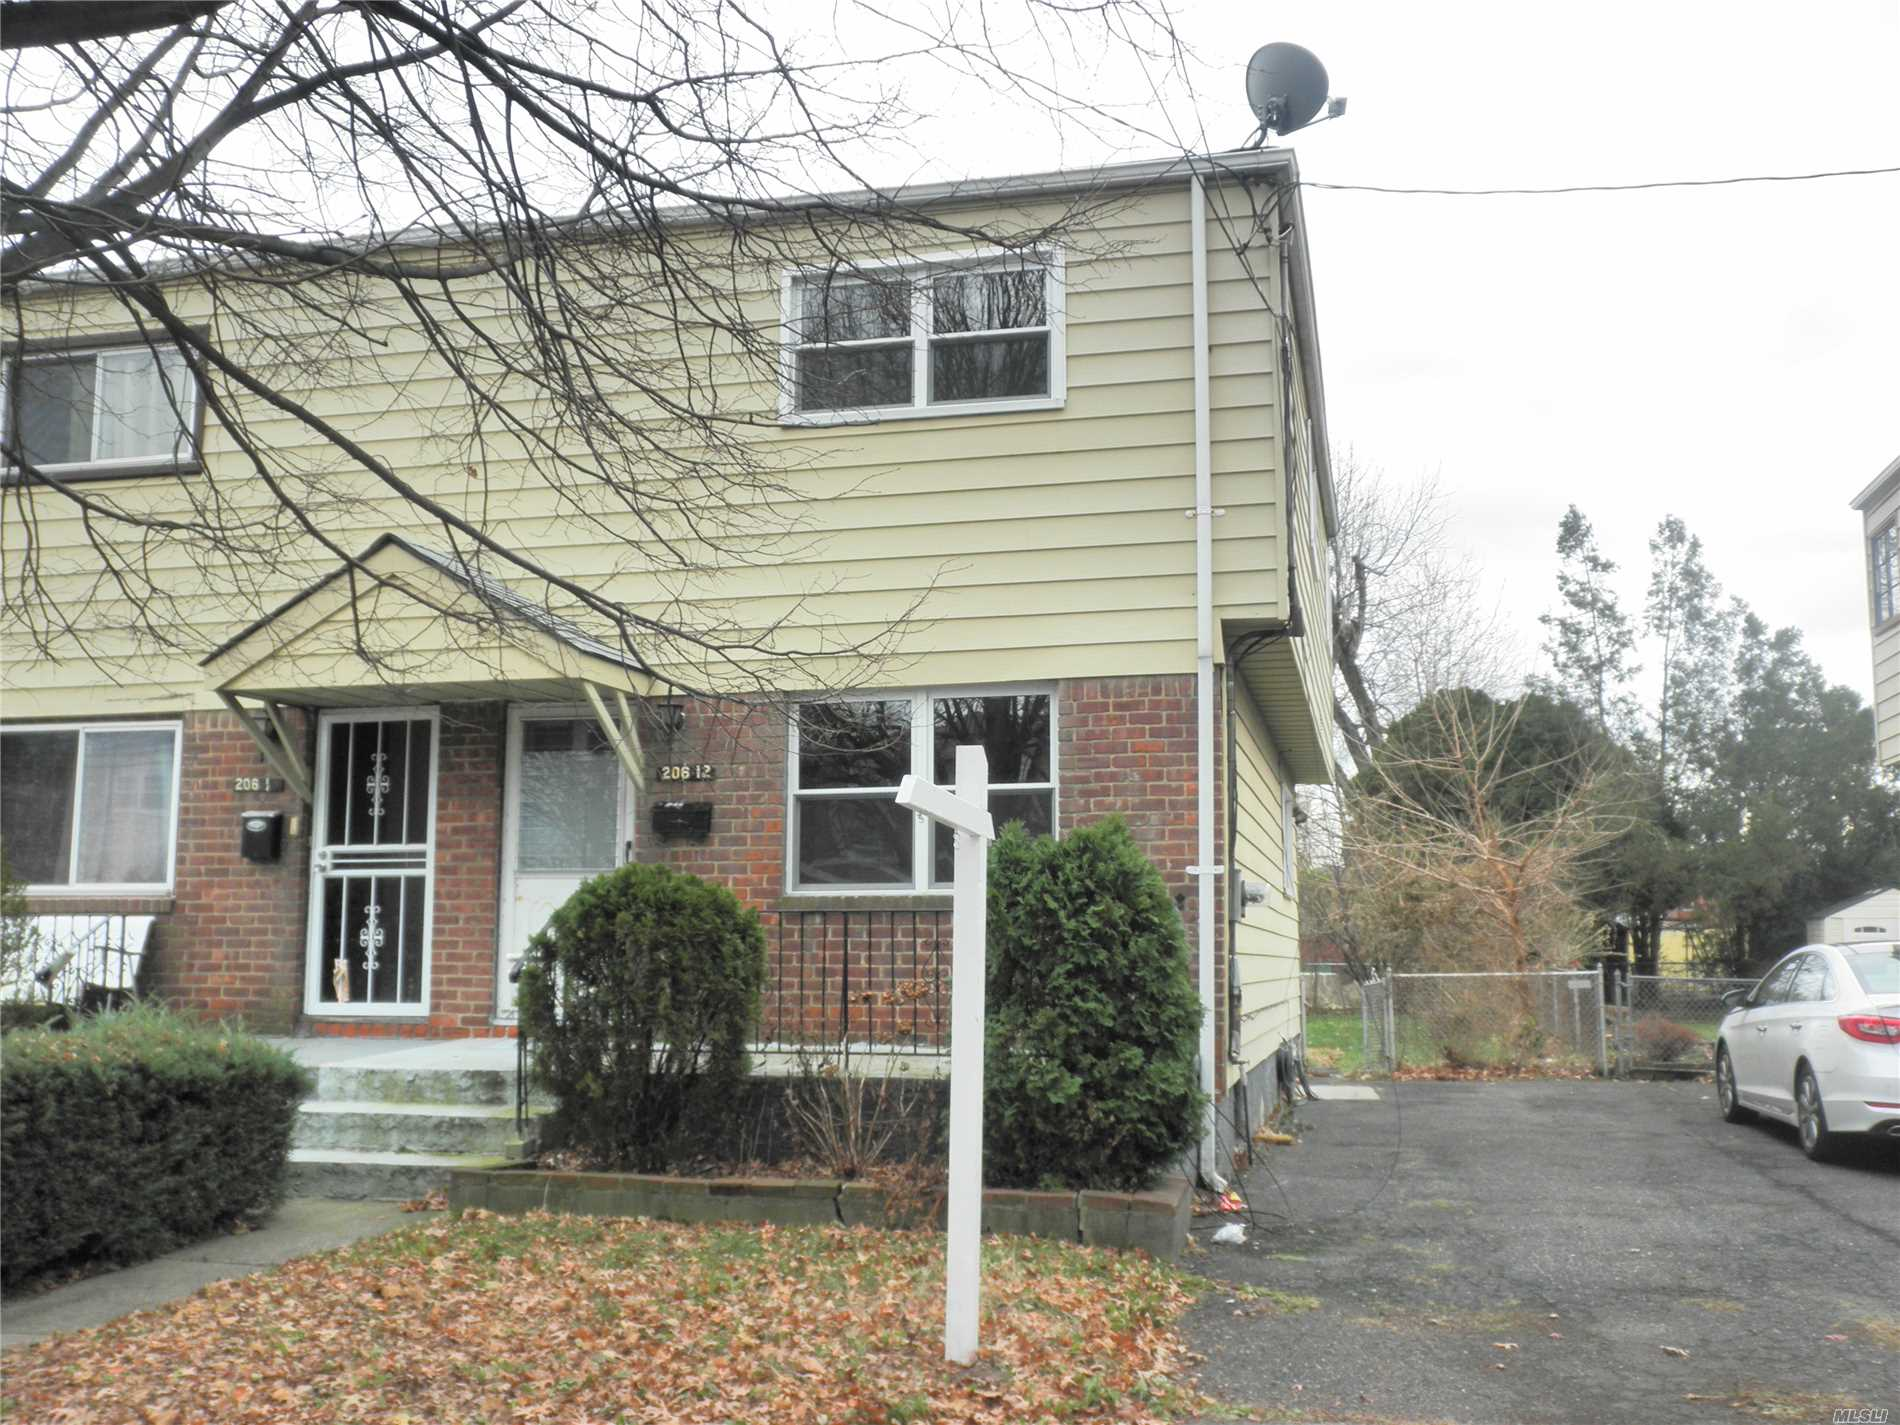 R3-1 Zoning !! Semi- Detached Colonial Home Features 3 Bedrooms, 1.5 Baths, Living Room, Dining Room & Fin Basement. Beautifully Maintained Throughout, Close To Shopping, Transportation & Schools. Sd #26.